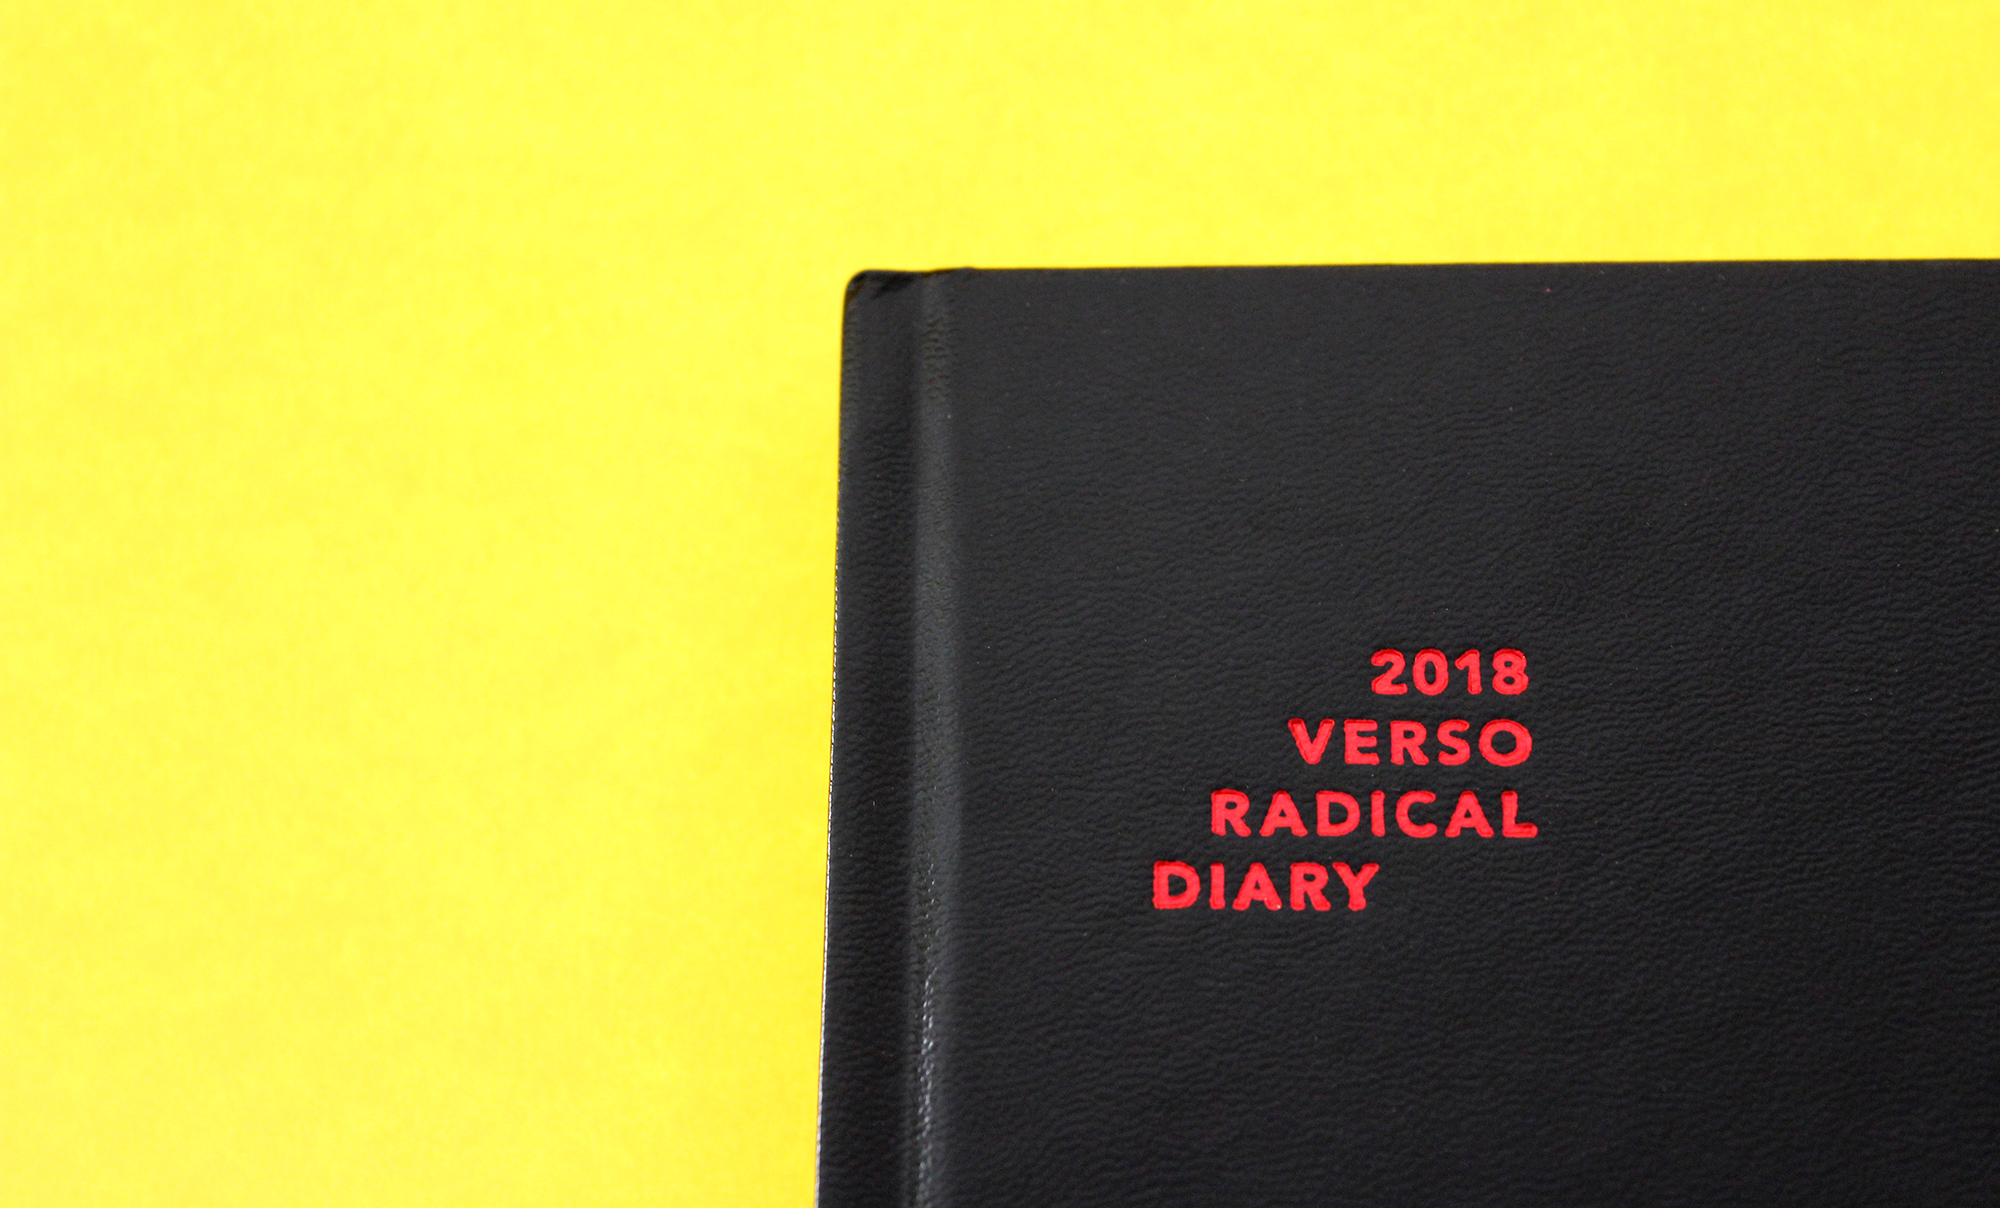 Verso_radical_diary_close_up_blog_post-